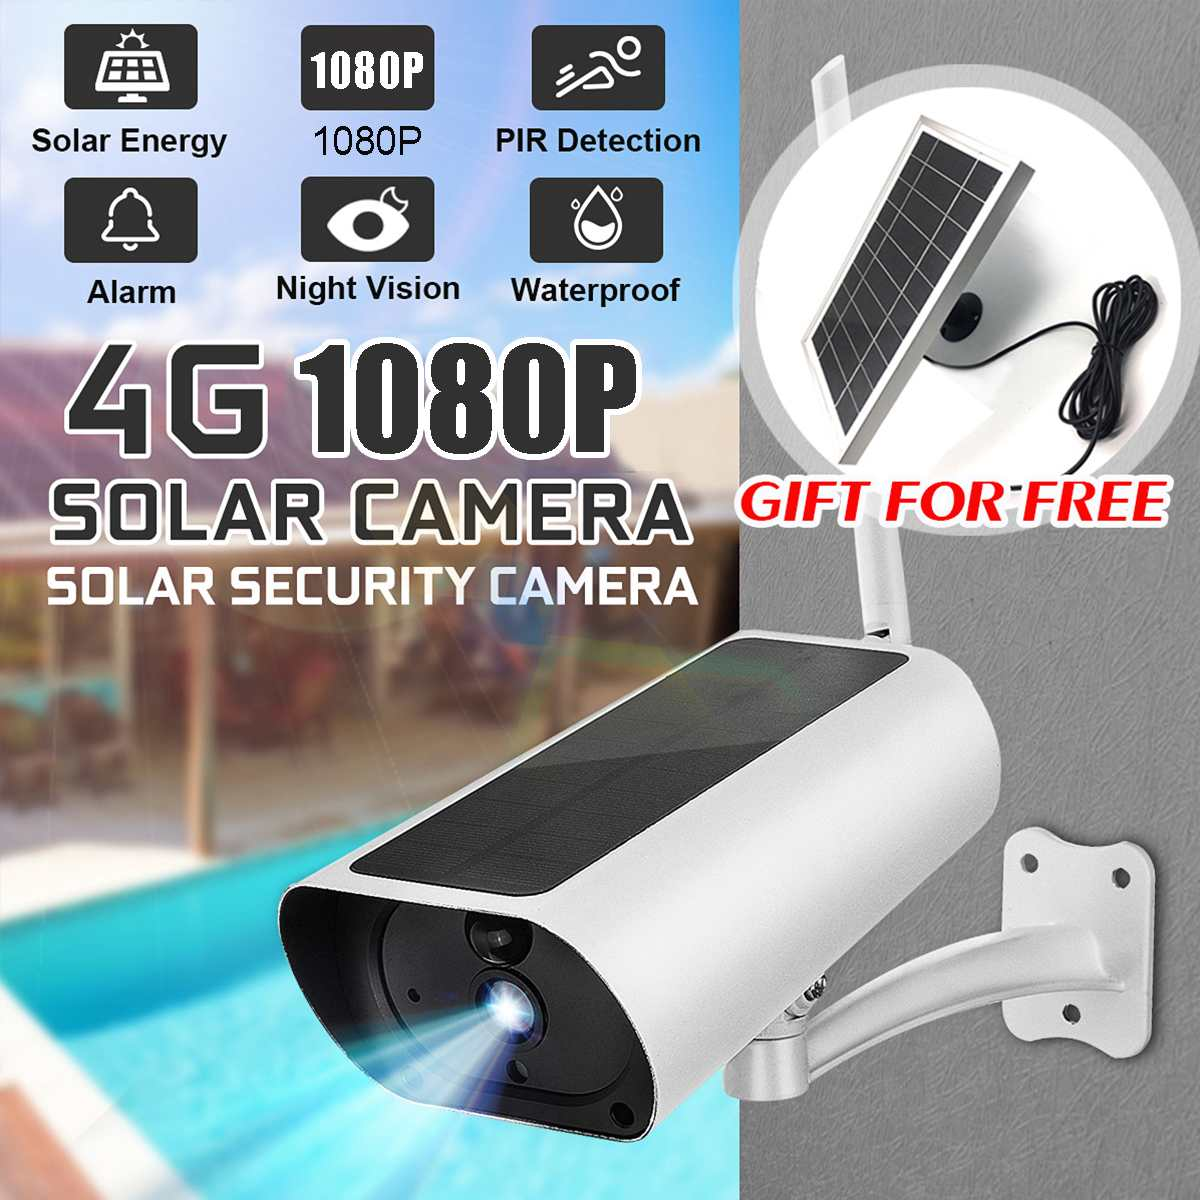 Waterproof HD 1080P Solar Camera Infrared Night Vision 4G Intelligent Real-time Monitoring Voice Intercom Alarm Device